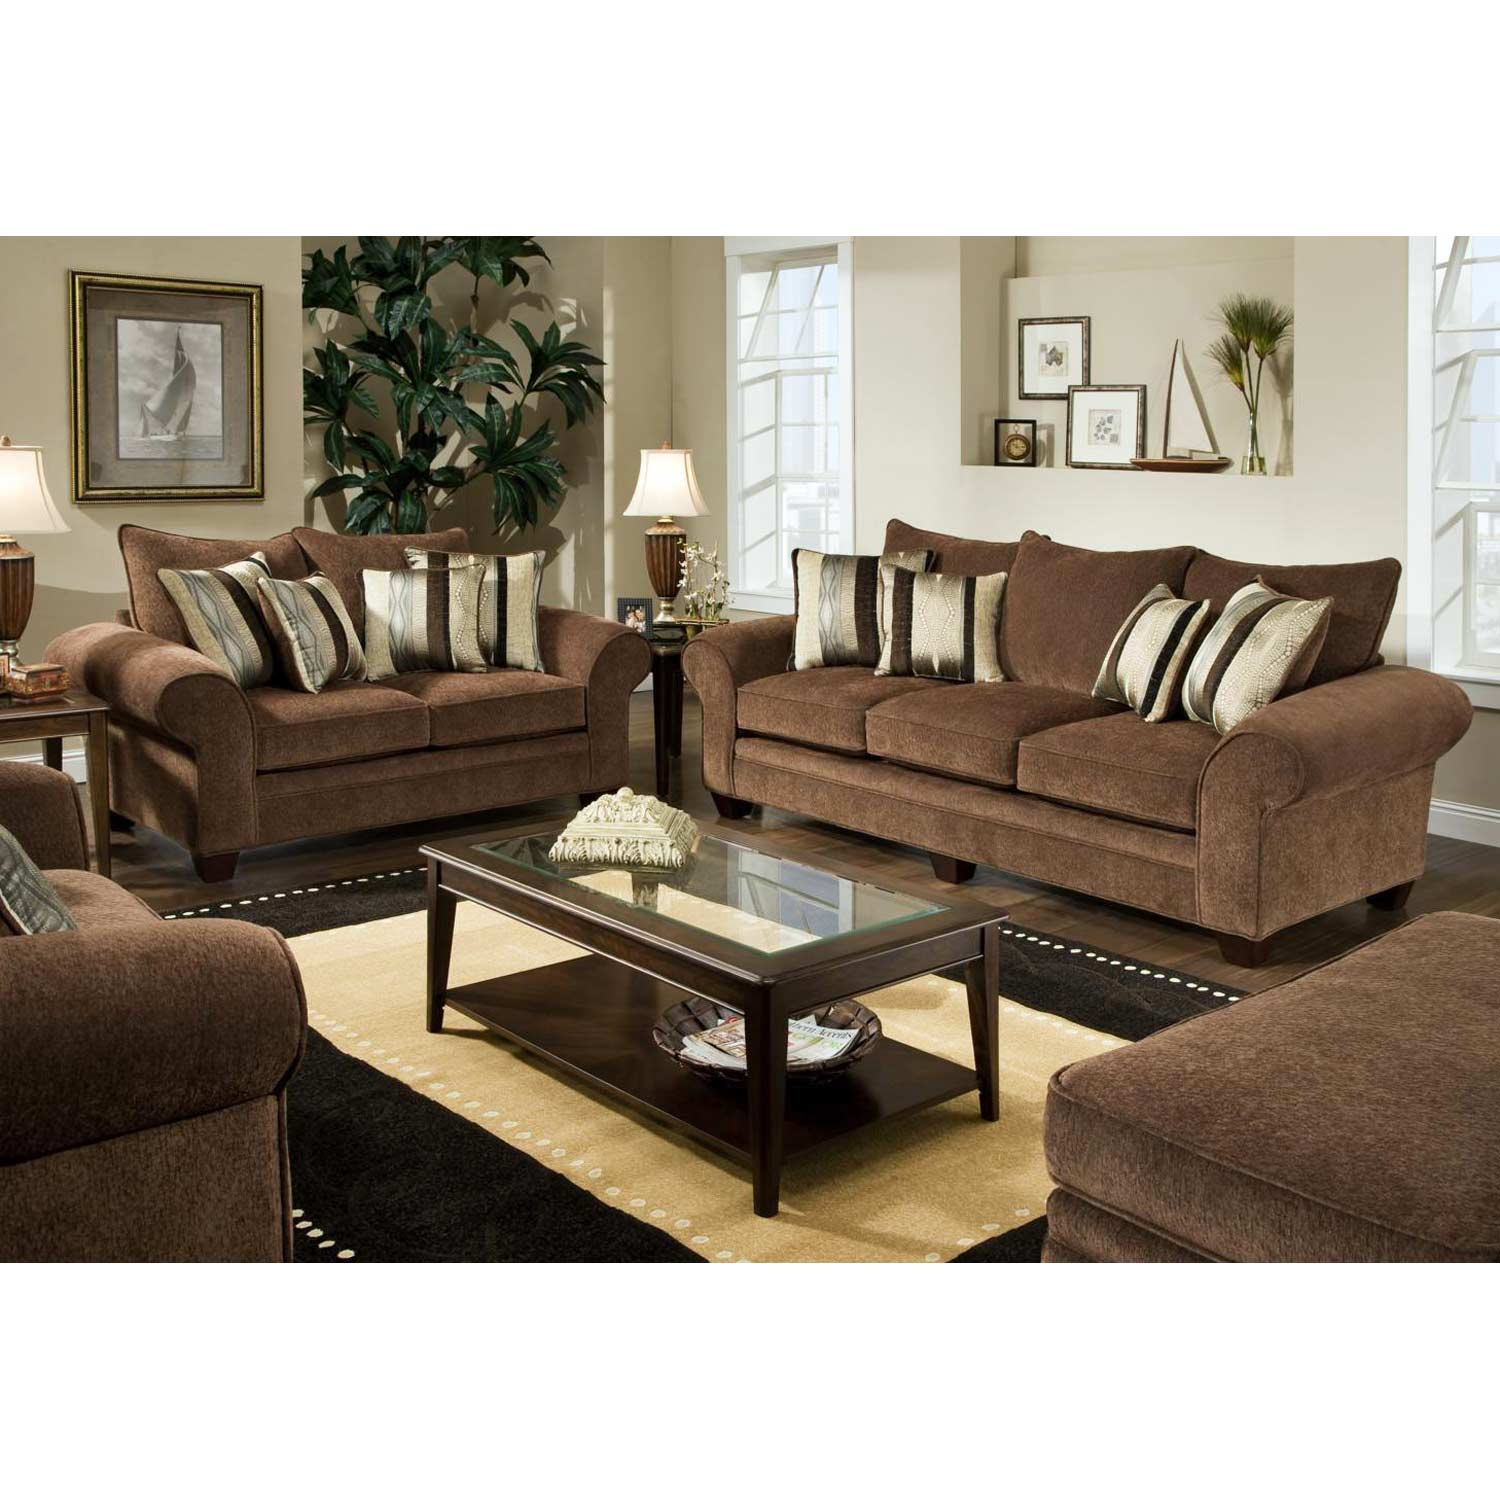 Clearlake Roll Arm Fabric Loveseat - Masterpiece Chocolate - CHF-183702-3950